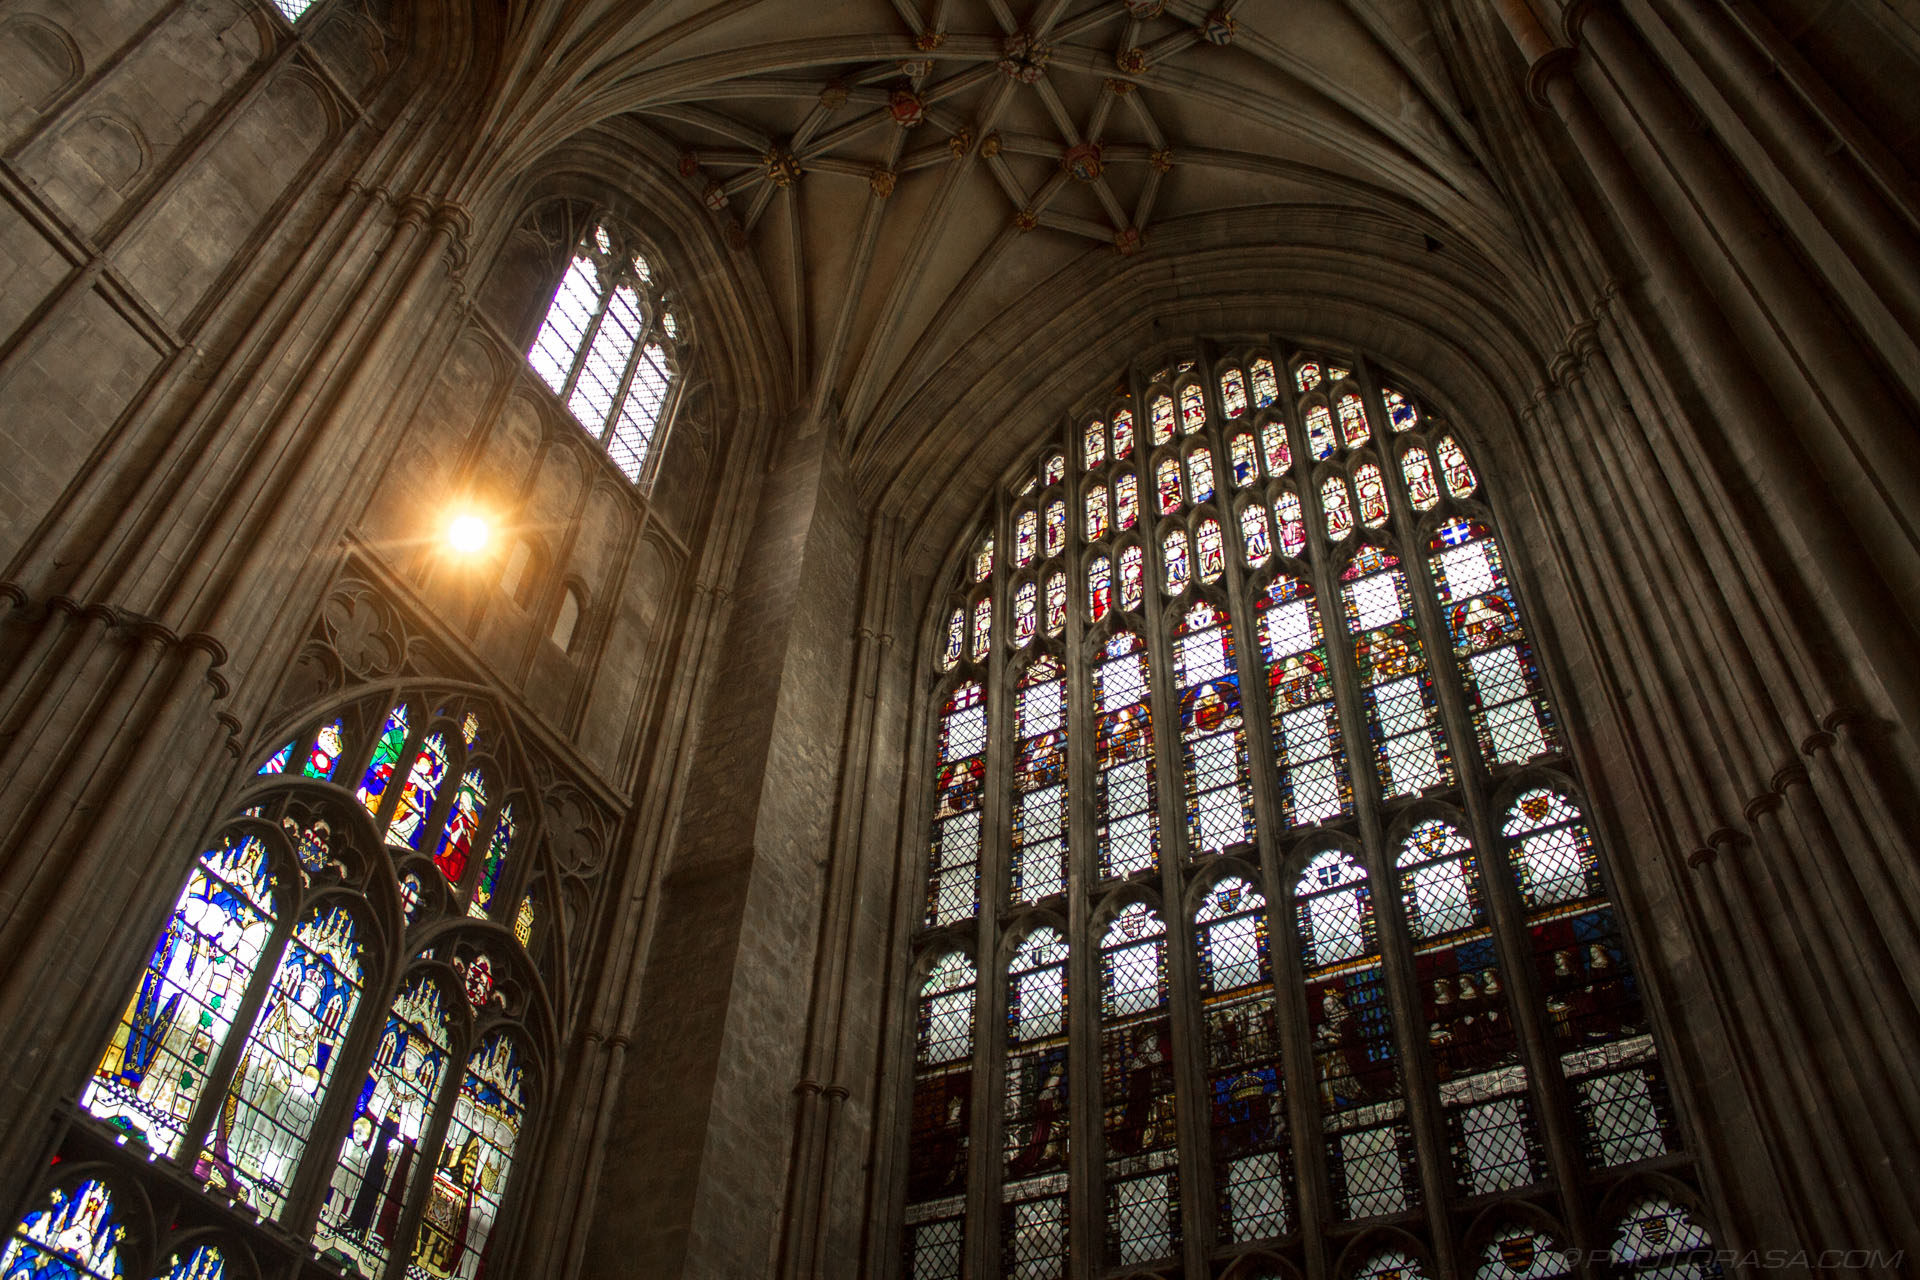 http://photorasa.com/canterbury-cathedral/stained-glass-windows-and-vaulted-ceiling-in-north-east-corner-of-nave/